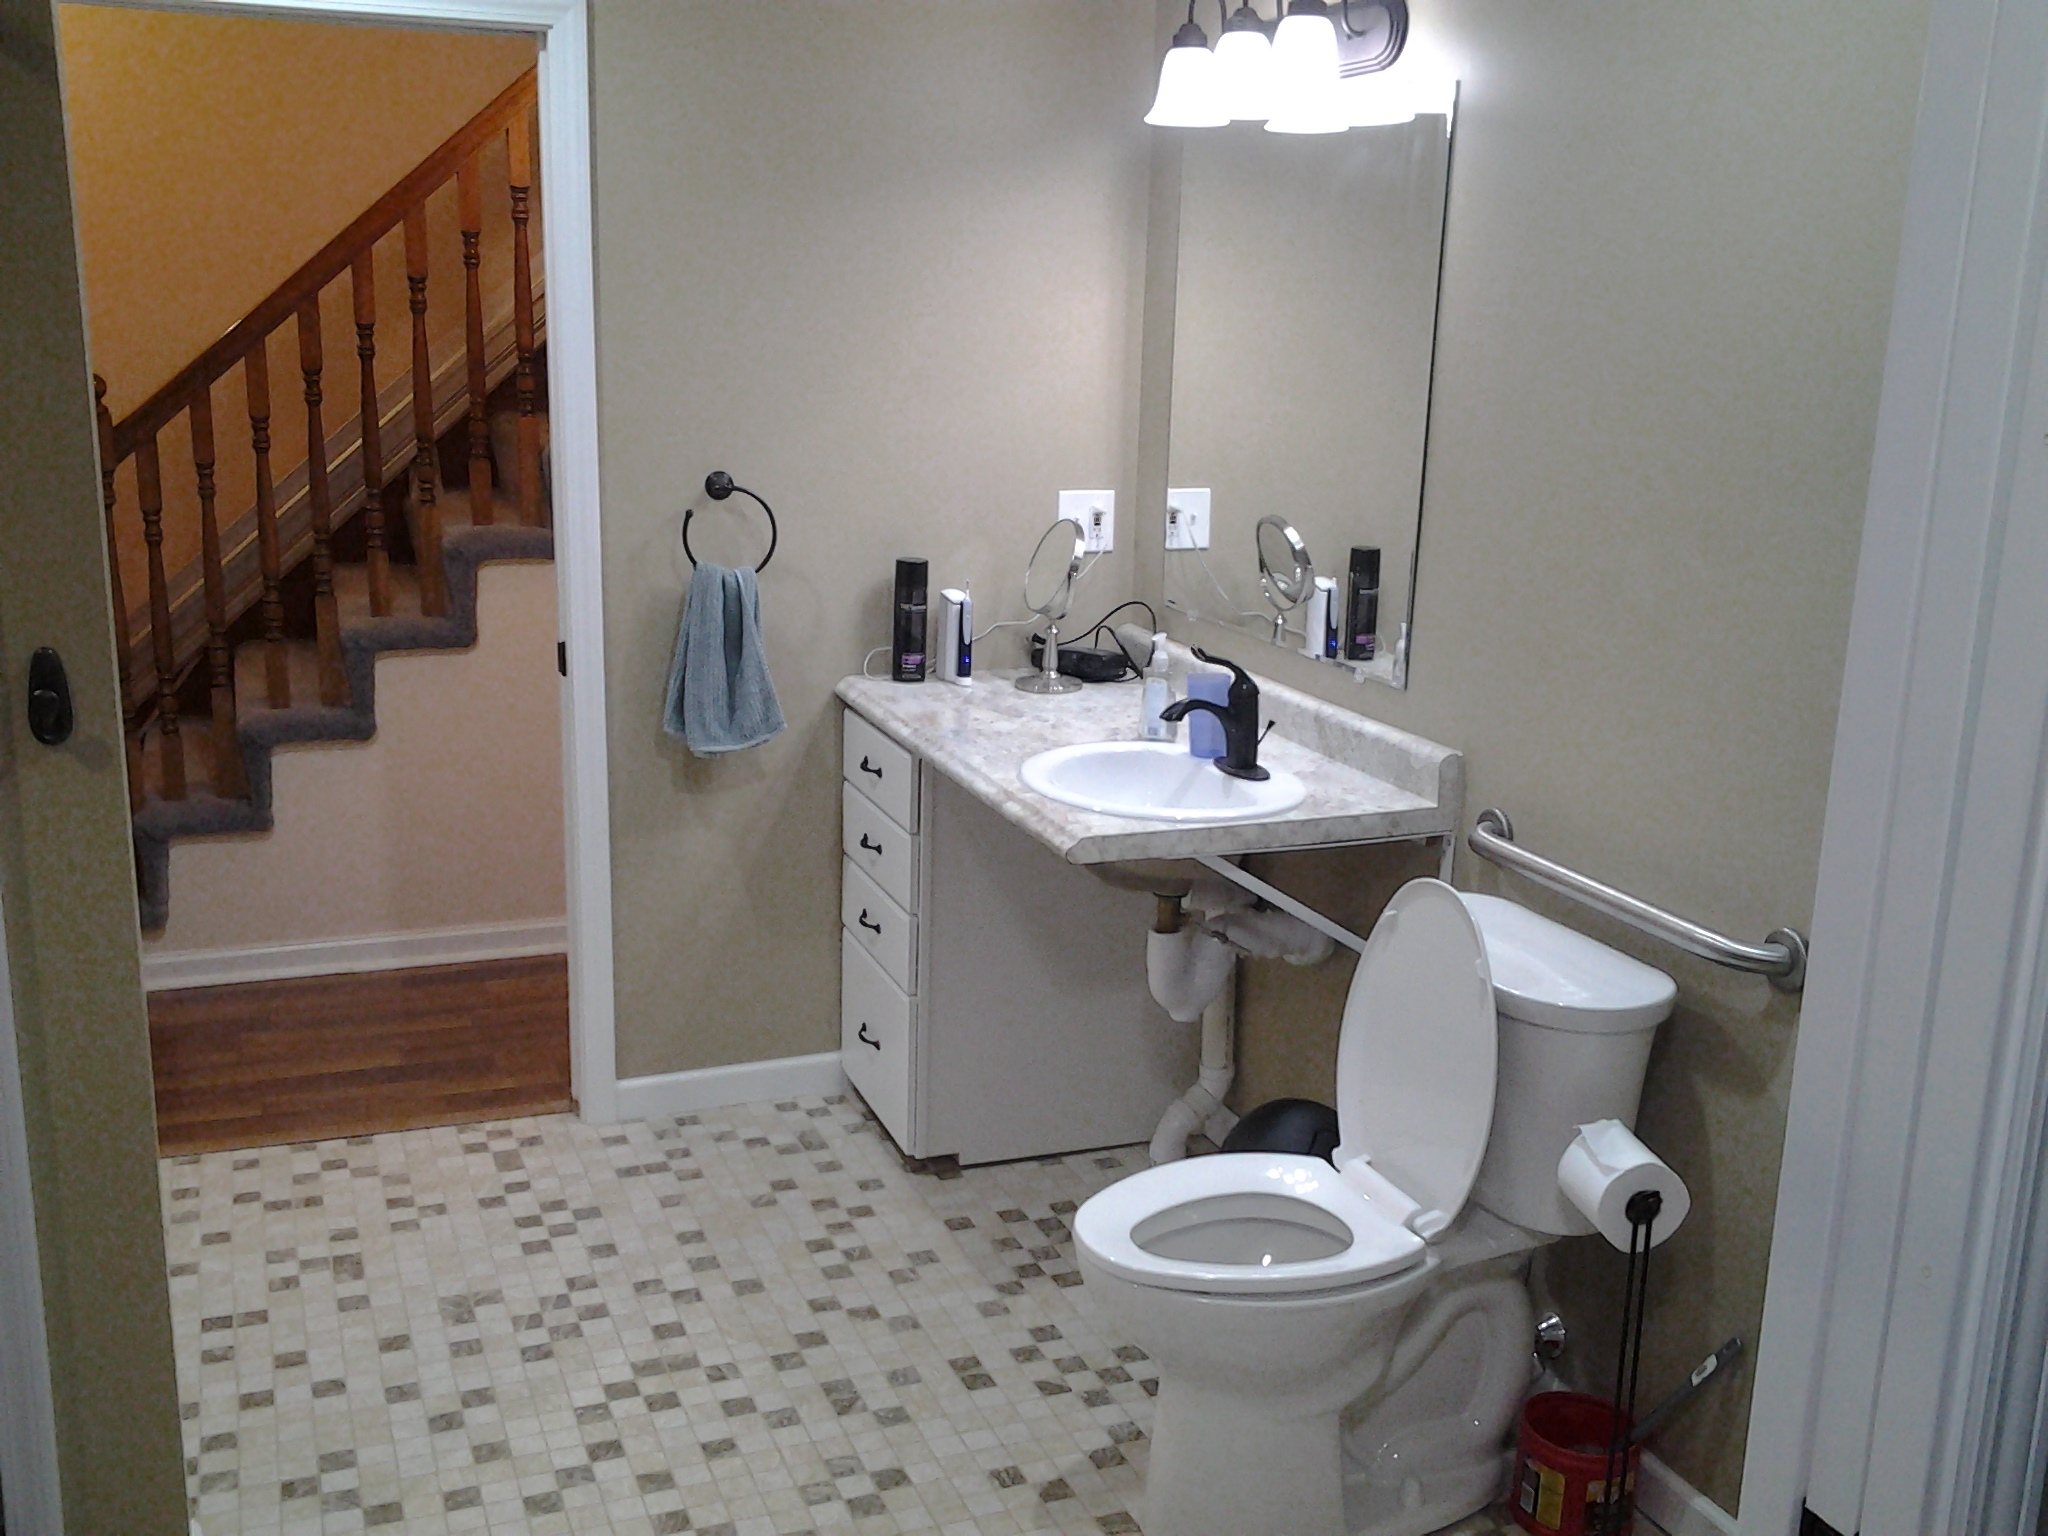 Handypro of west michigan in marne mi 49435 for Bath remodel wyoming mi